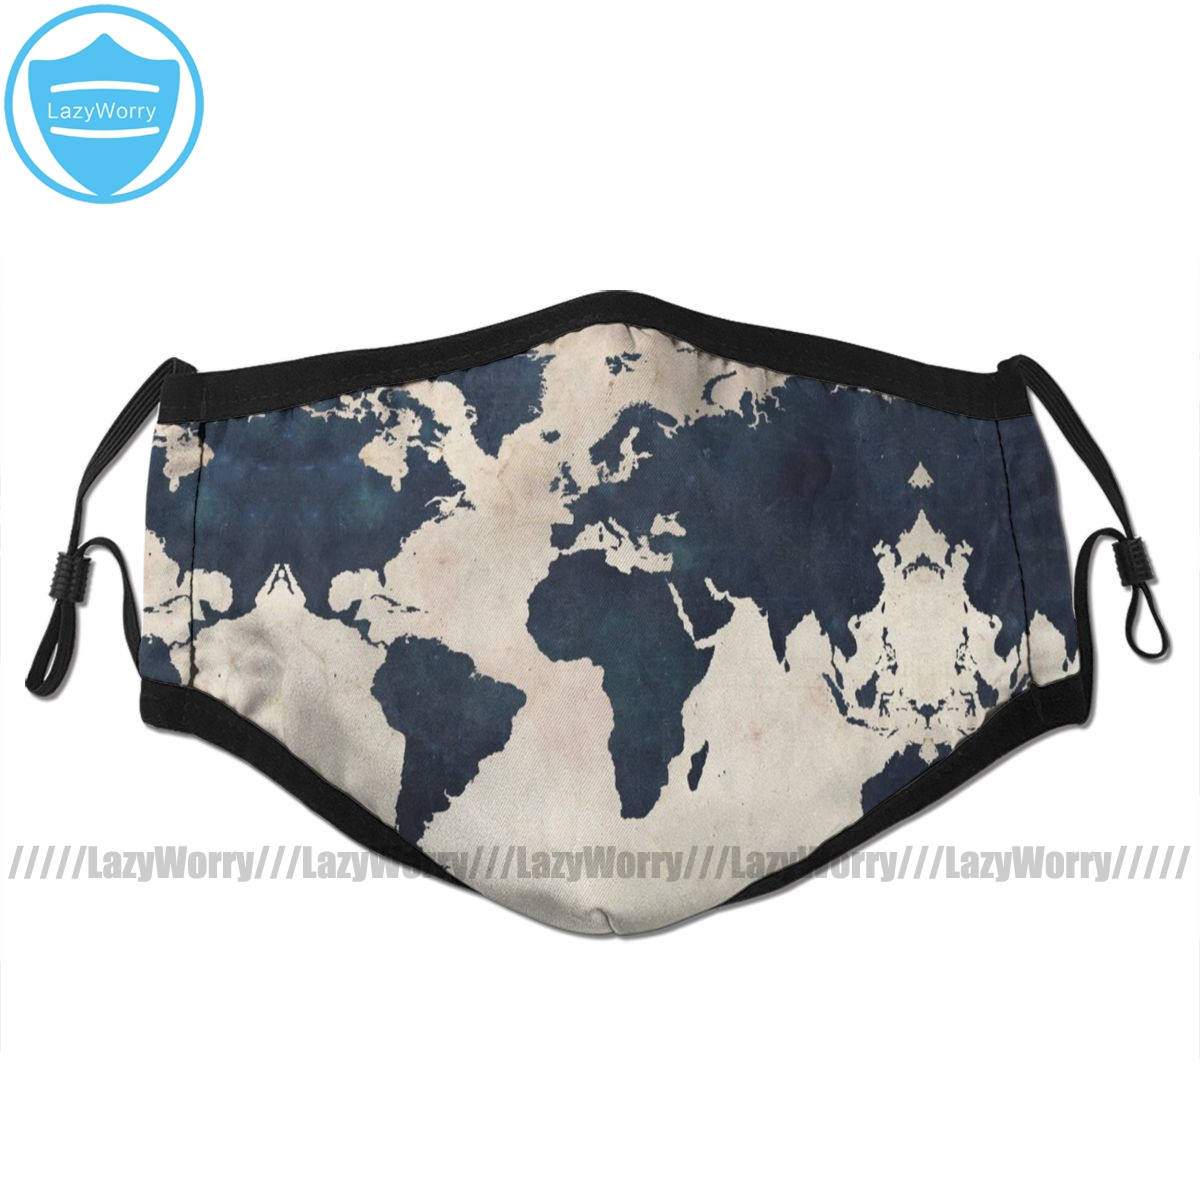 World Map Mouth Face Mask World Map Distressed Navy Facial Mask Fashion Funny with 2 Filters for AdultMens Masks   -